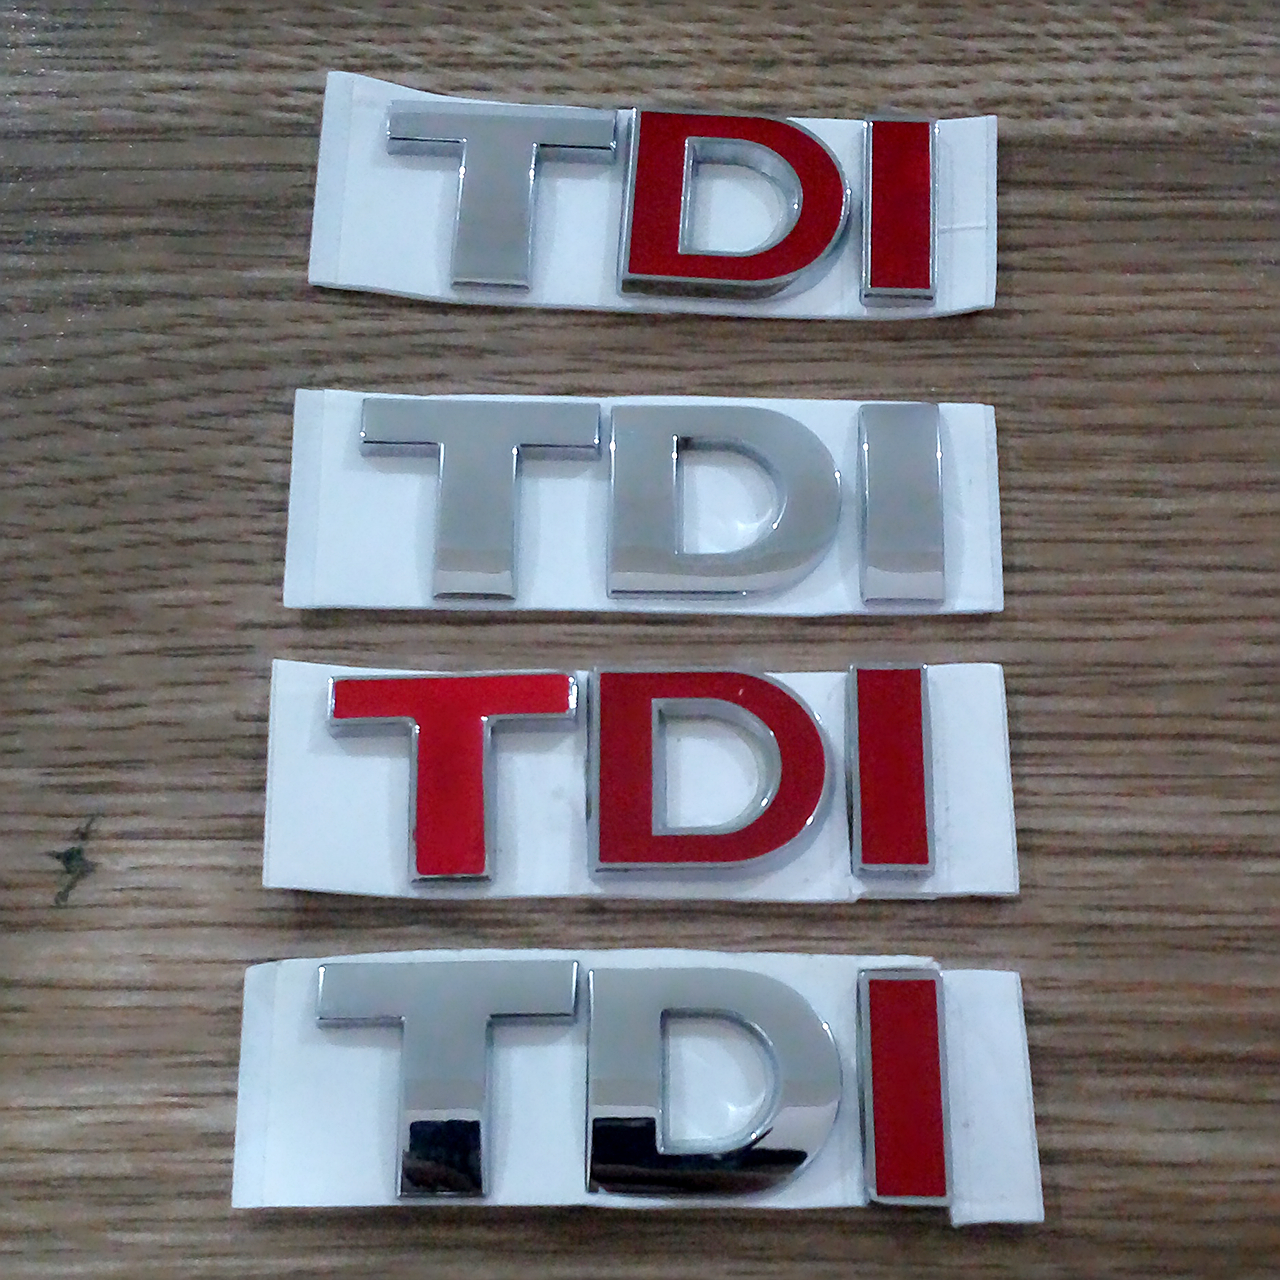 CAR-STYLING TDI GTI Badge Emblem Decal Sticker Logo VW for VW Skoda Golf JETTA PASSAT MK4 MK5 MK6 Car styling car accessories macarons bz065